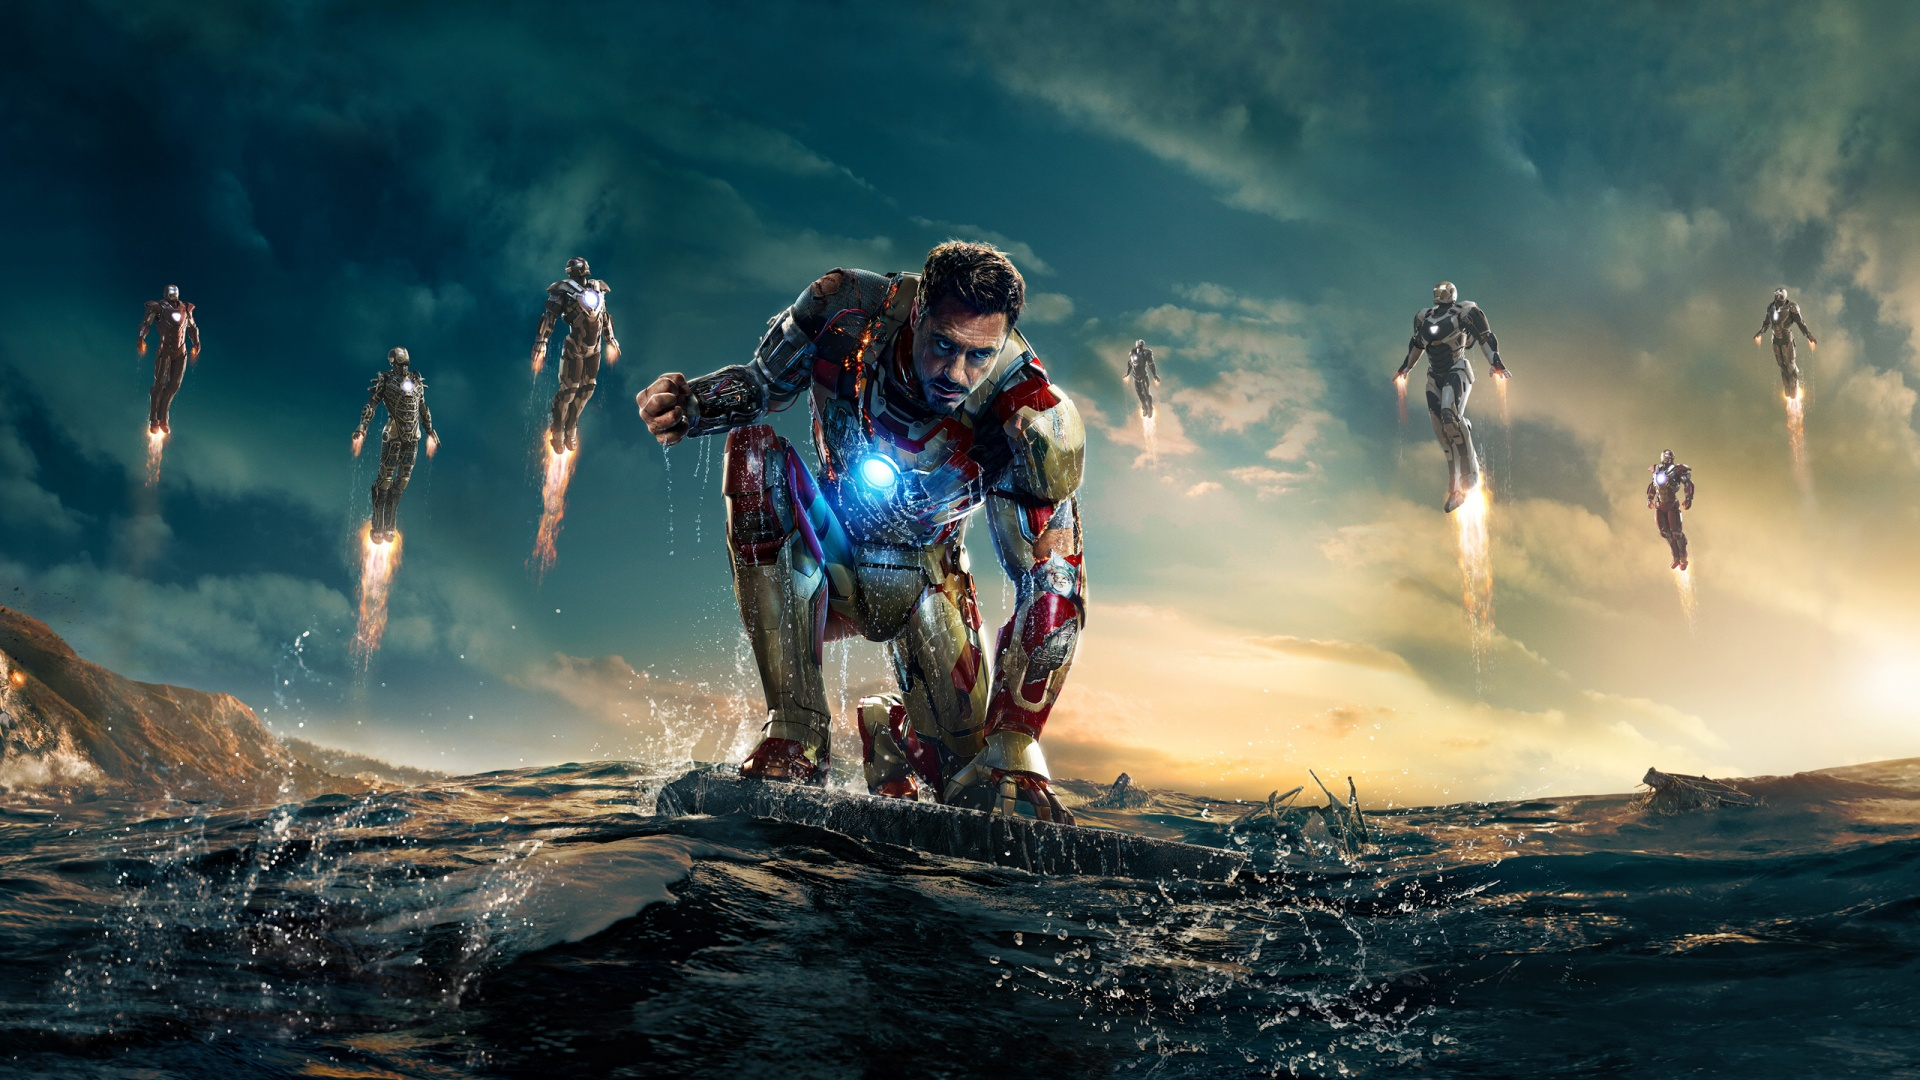 Marvel Live Action Movies Images Iron Man 3 HD Wallpaper And Background Photos